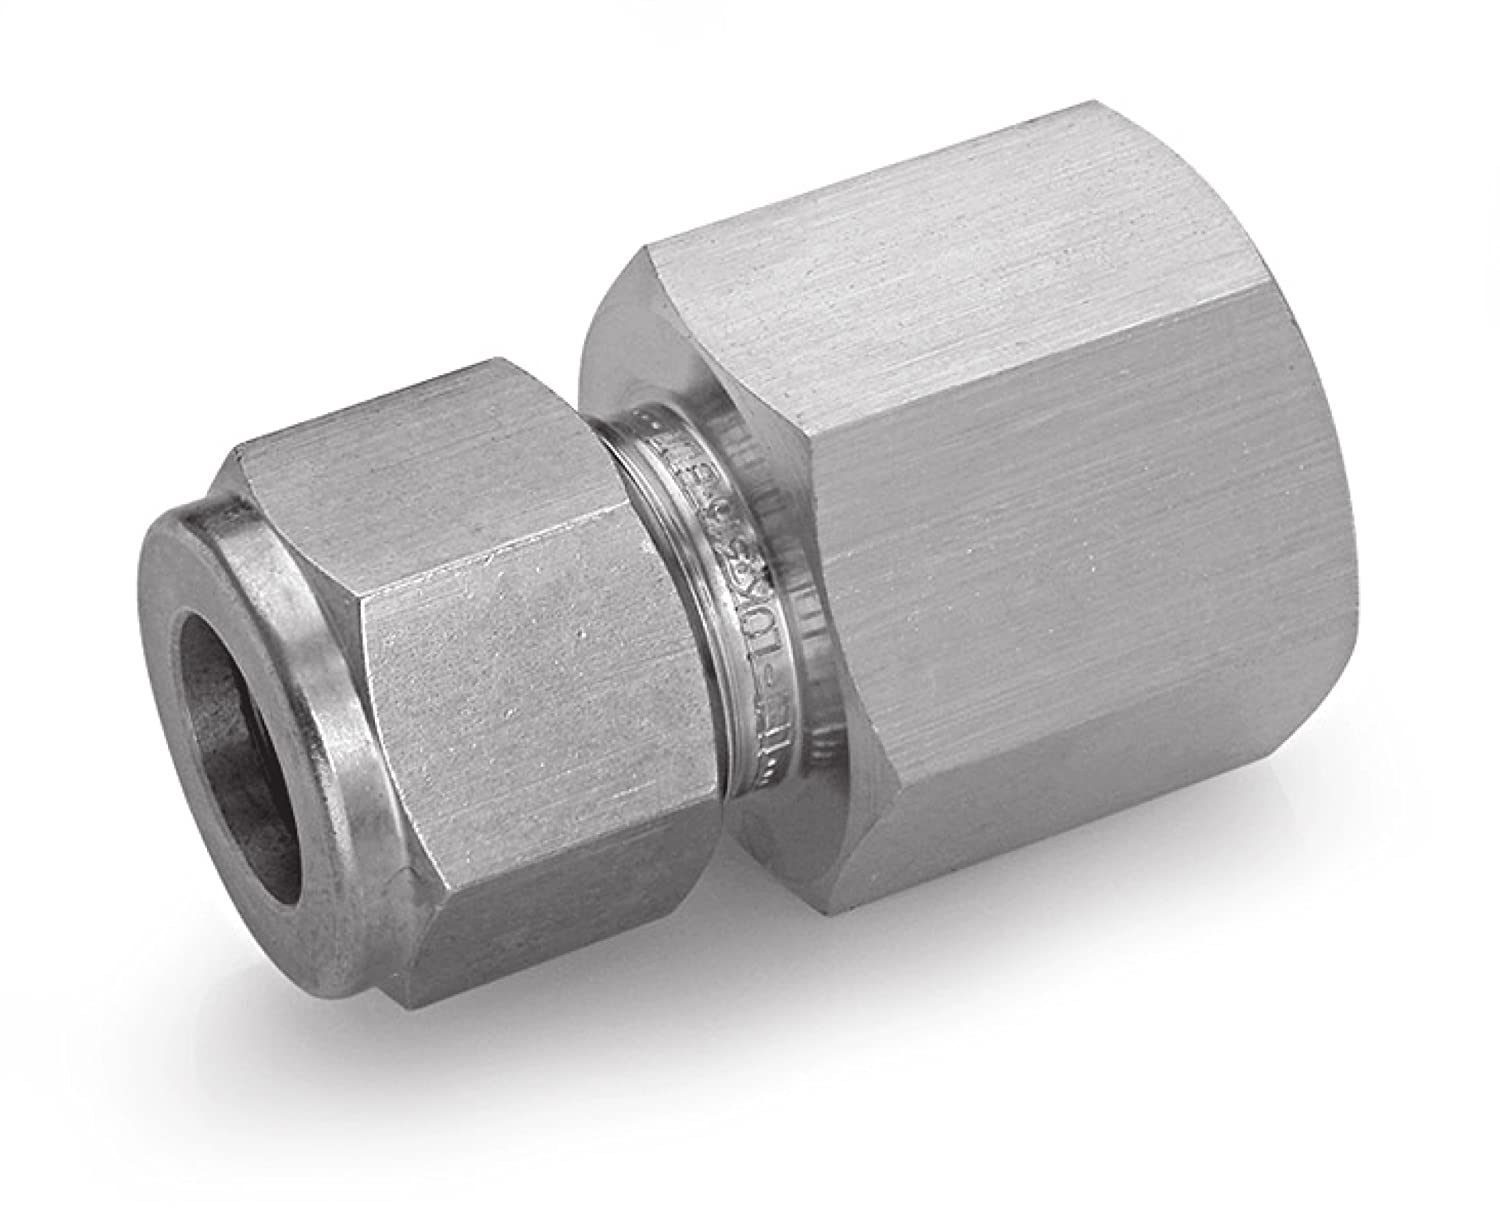 1//4 NPT Female x Tube OD Ham-Let Stainless Steel 316 Let-Lok Compression Fitting Adapter